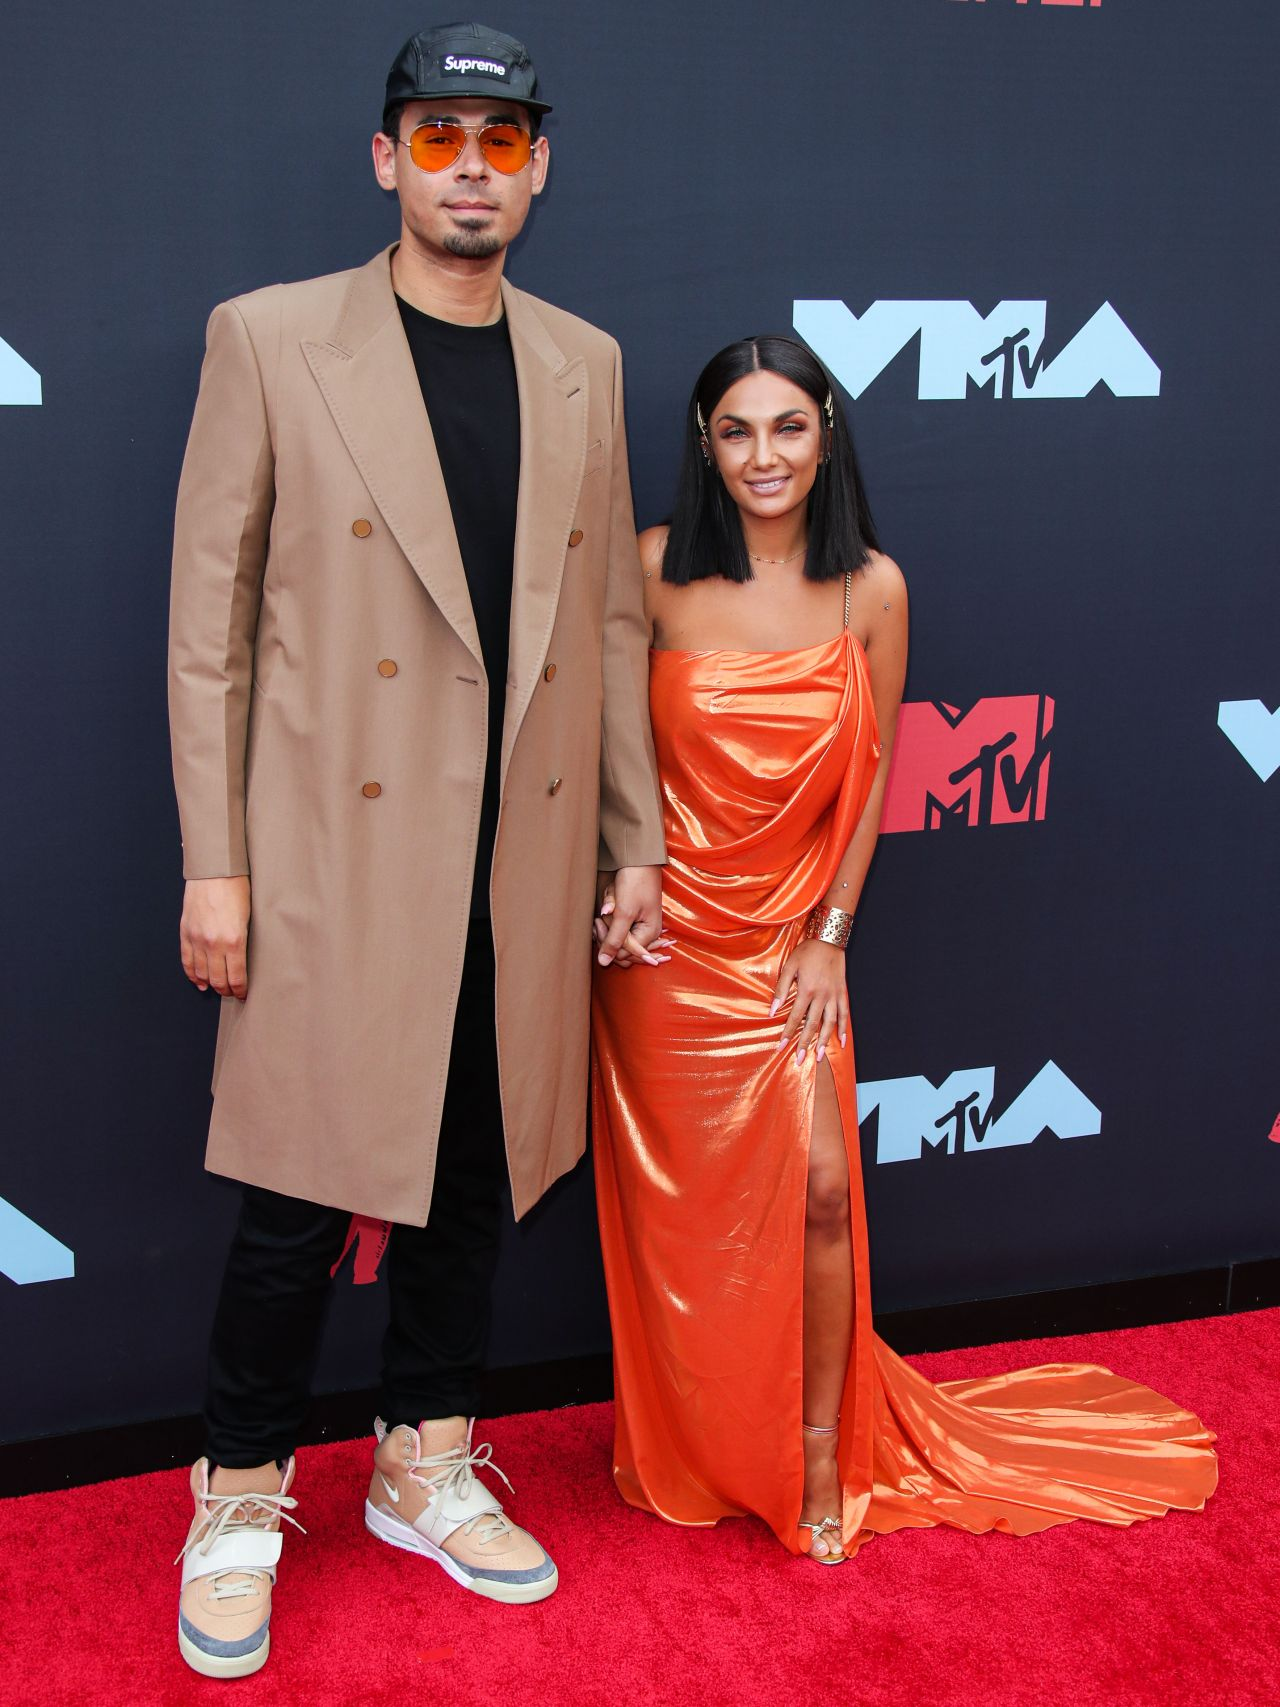 Elettra Lamborghini And Afrojack 2019 Mtv Video Music